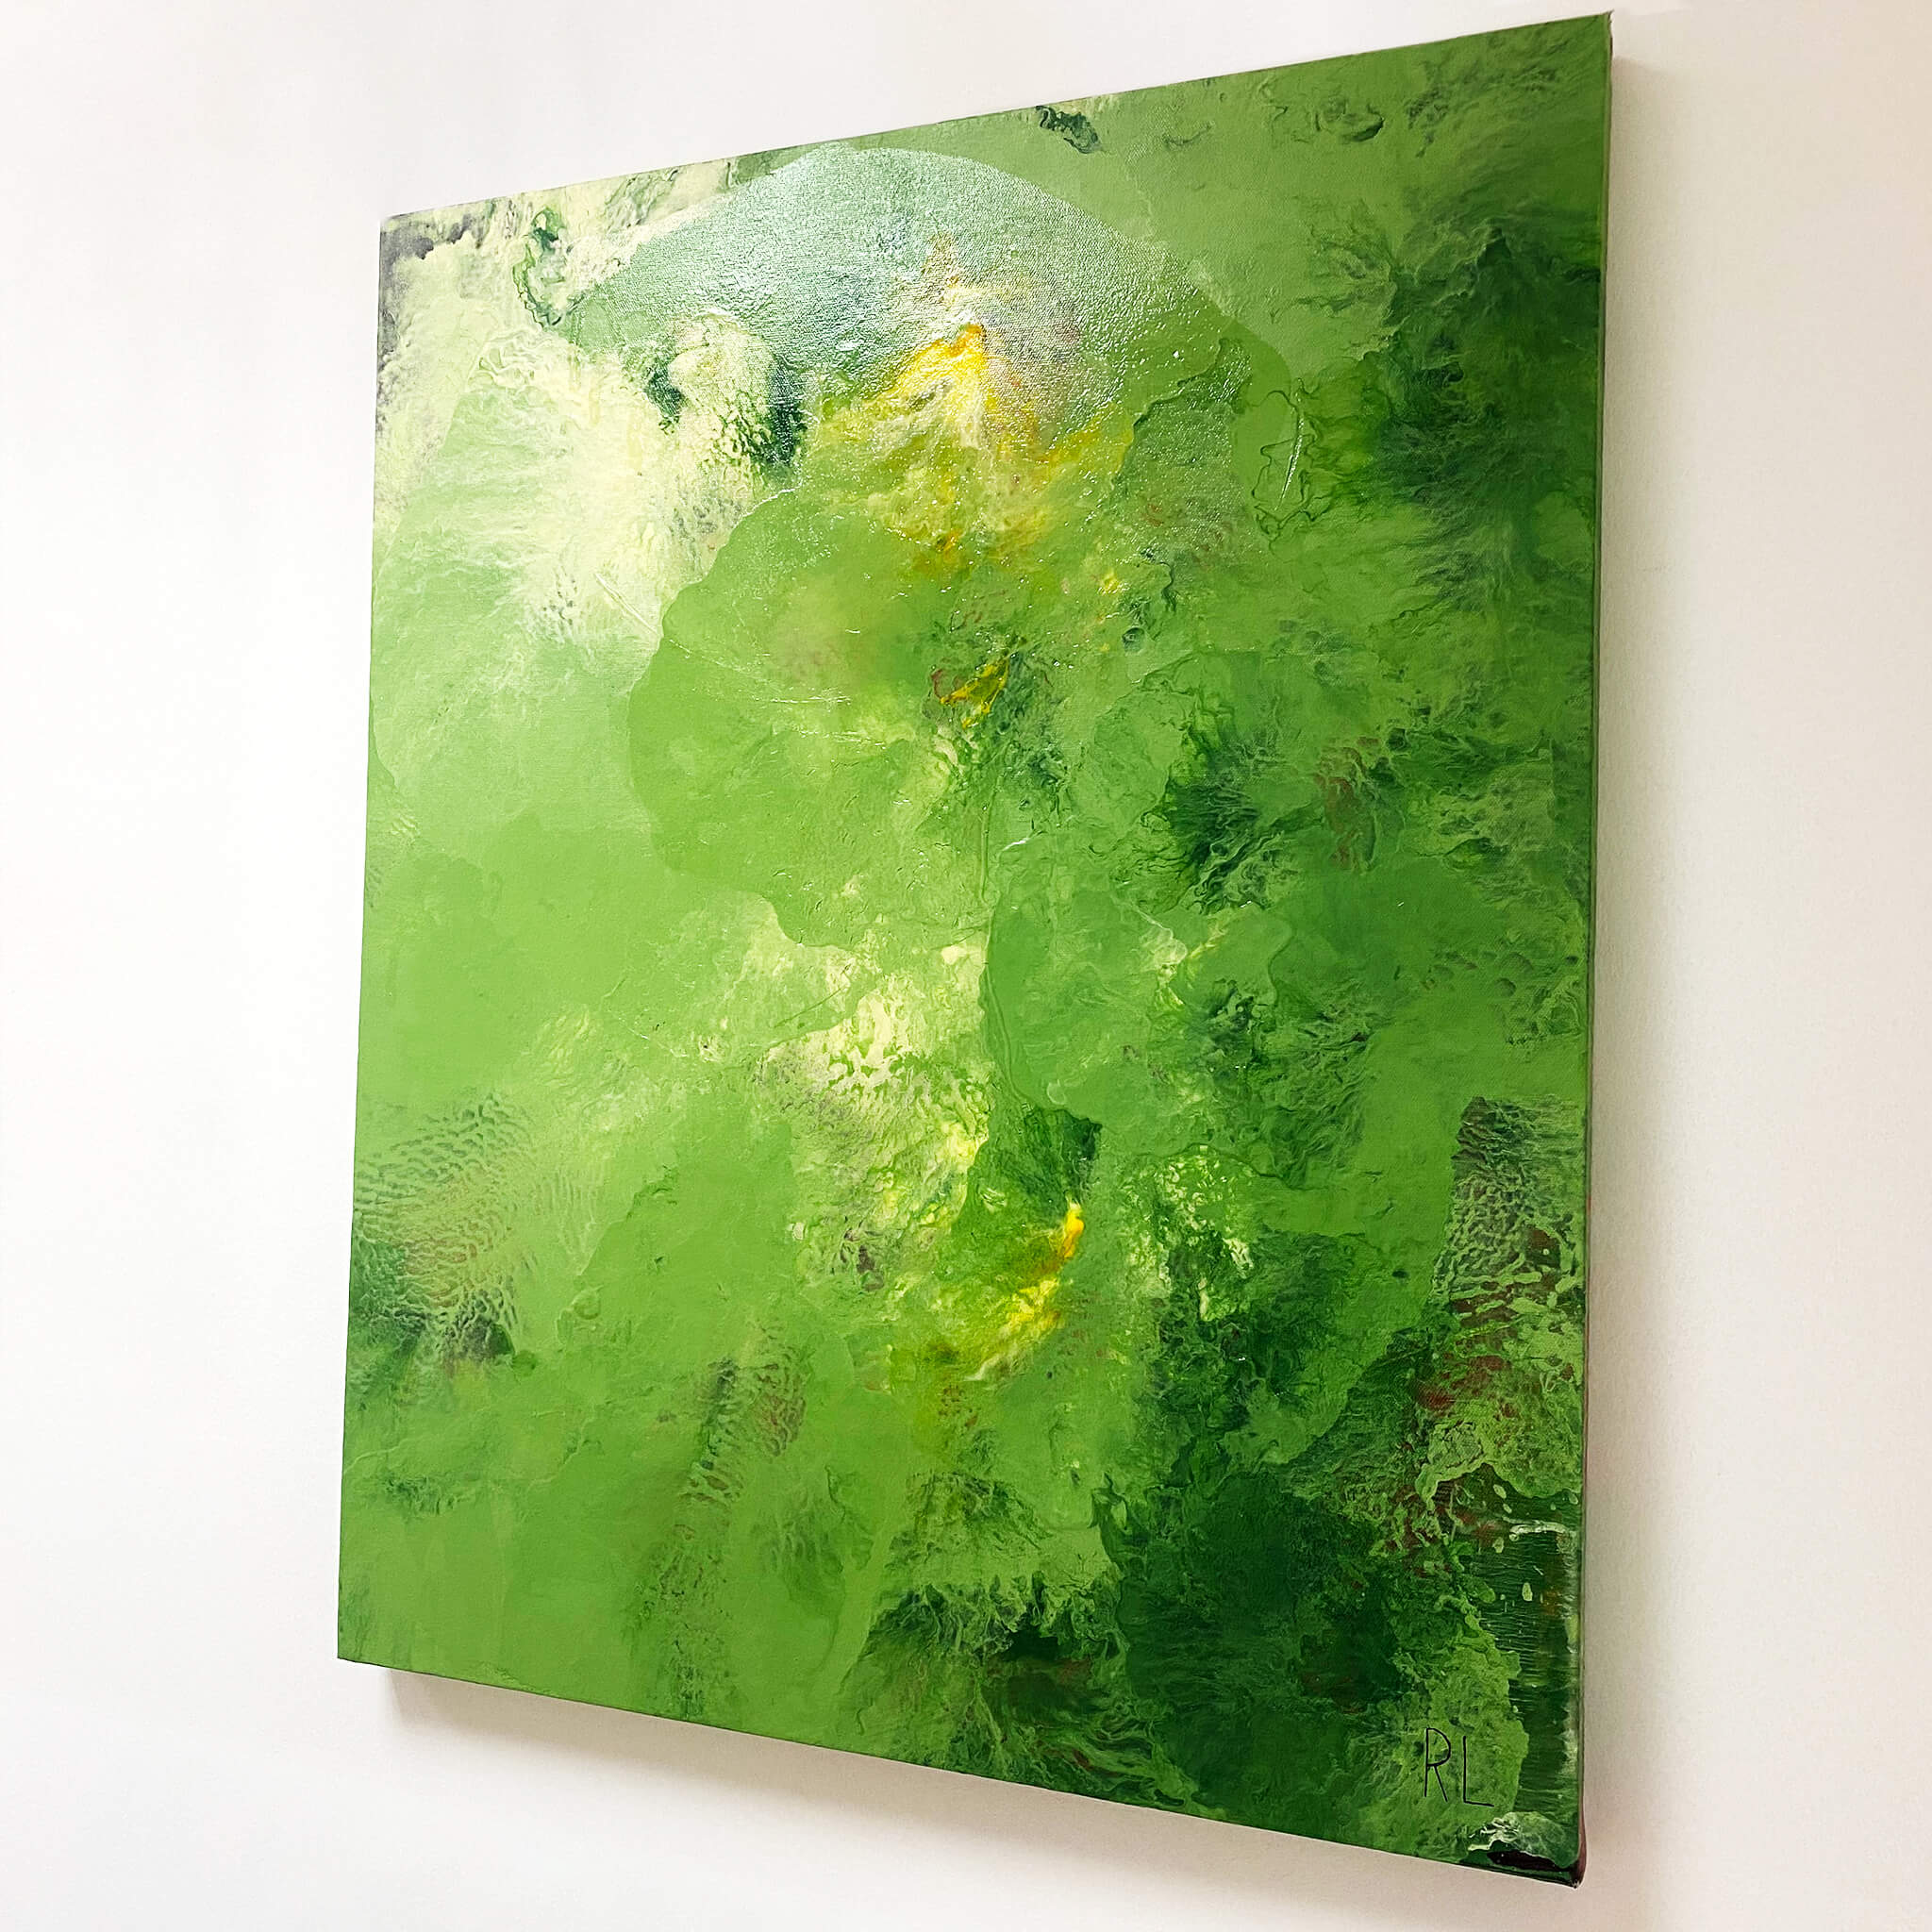 Green Series 3 painting